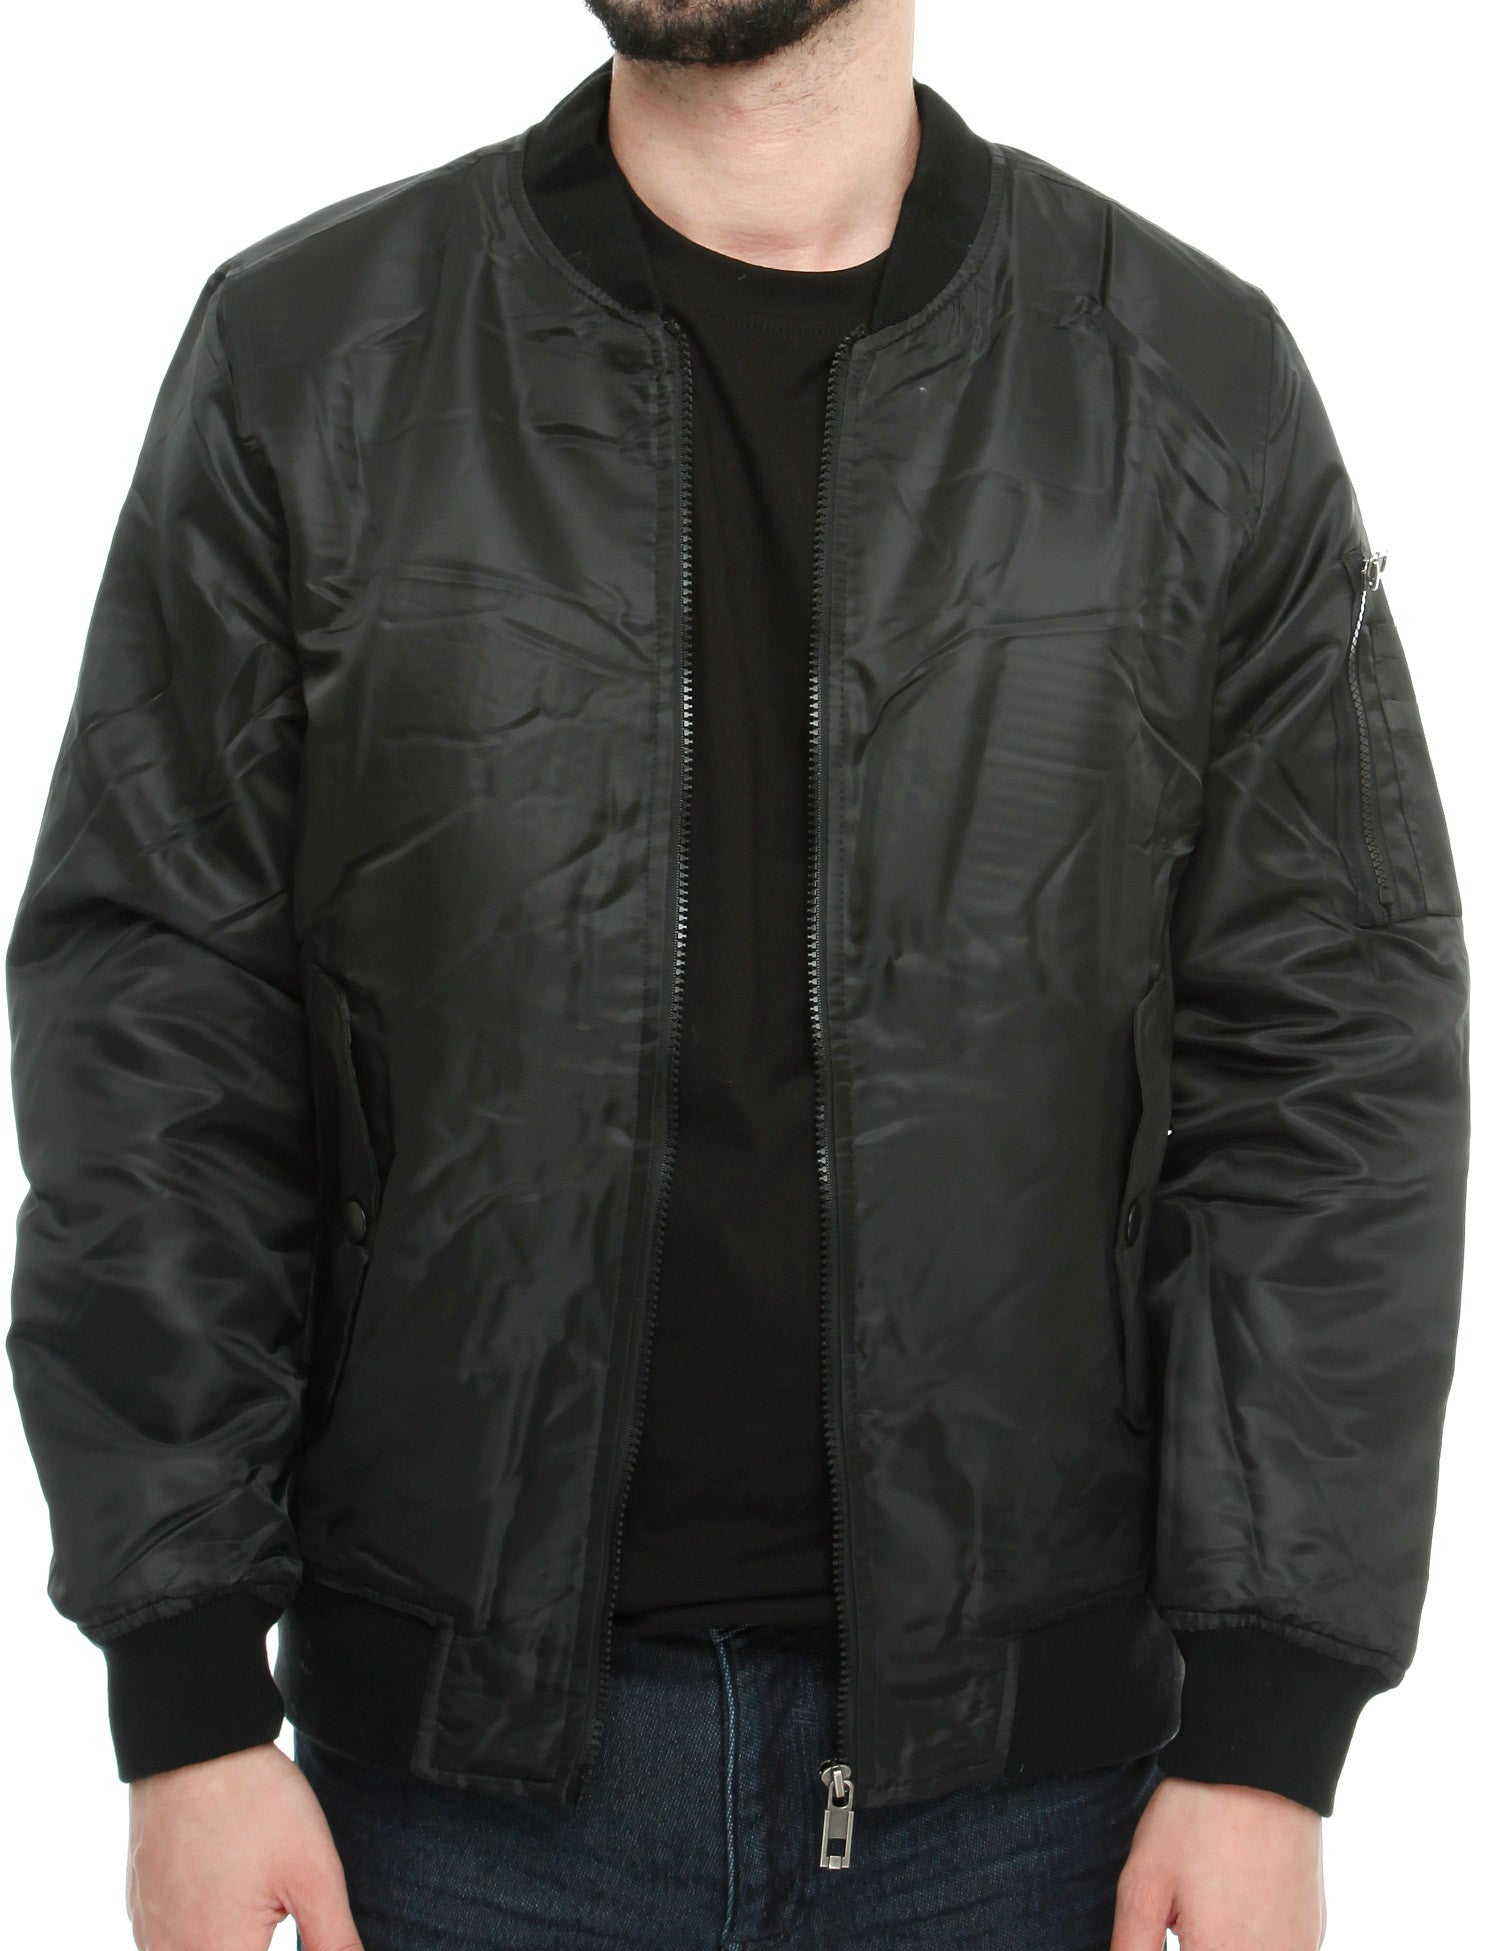 SK-5 SK-MILITARY Bomber Jacket Black